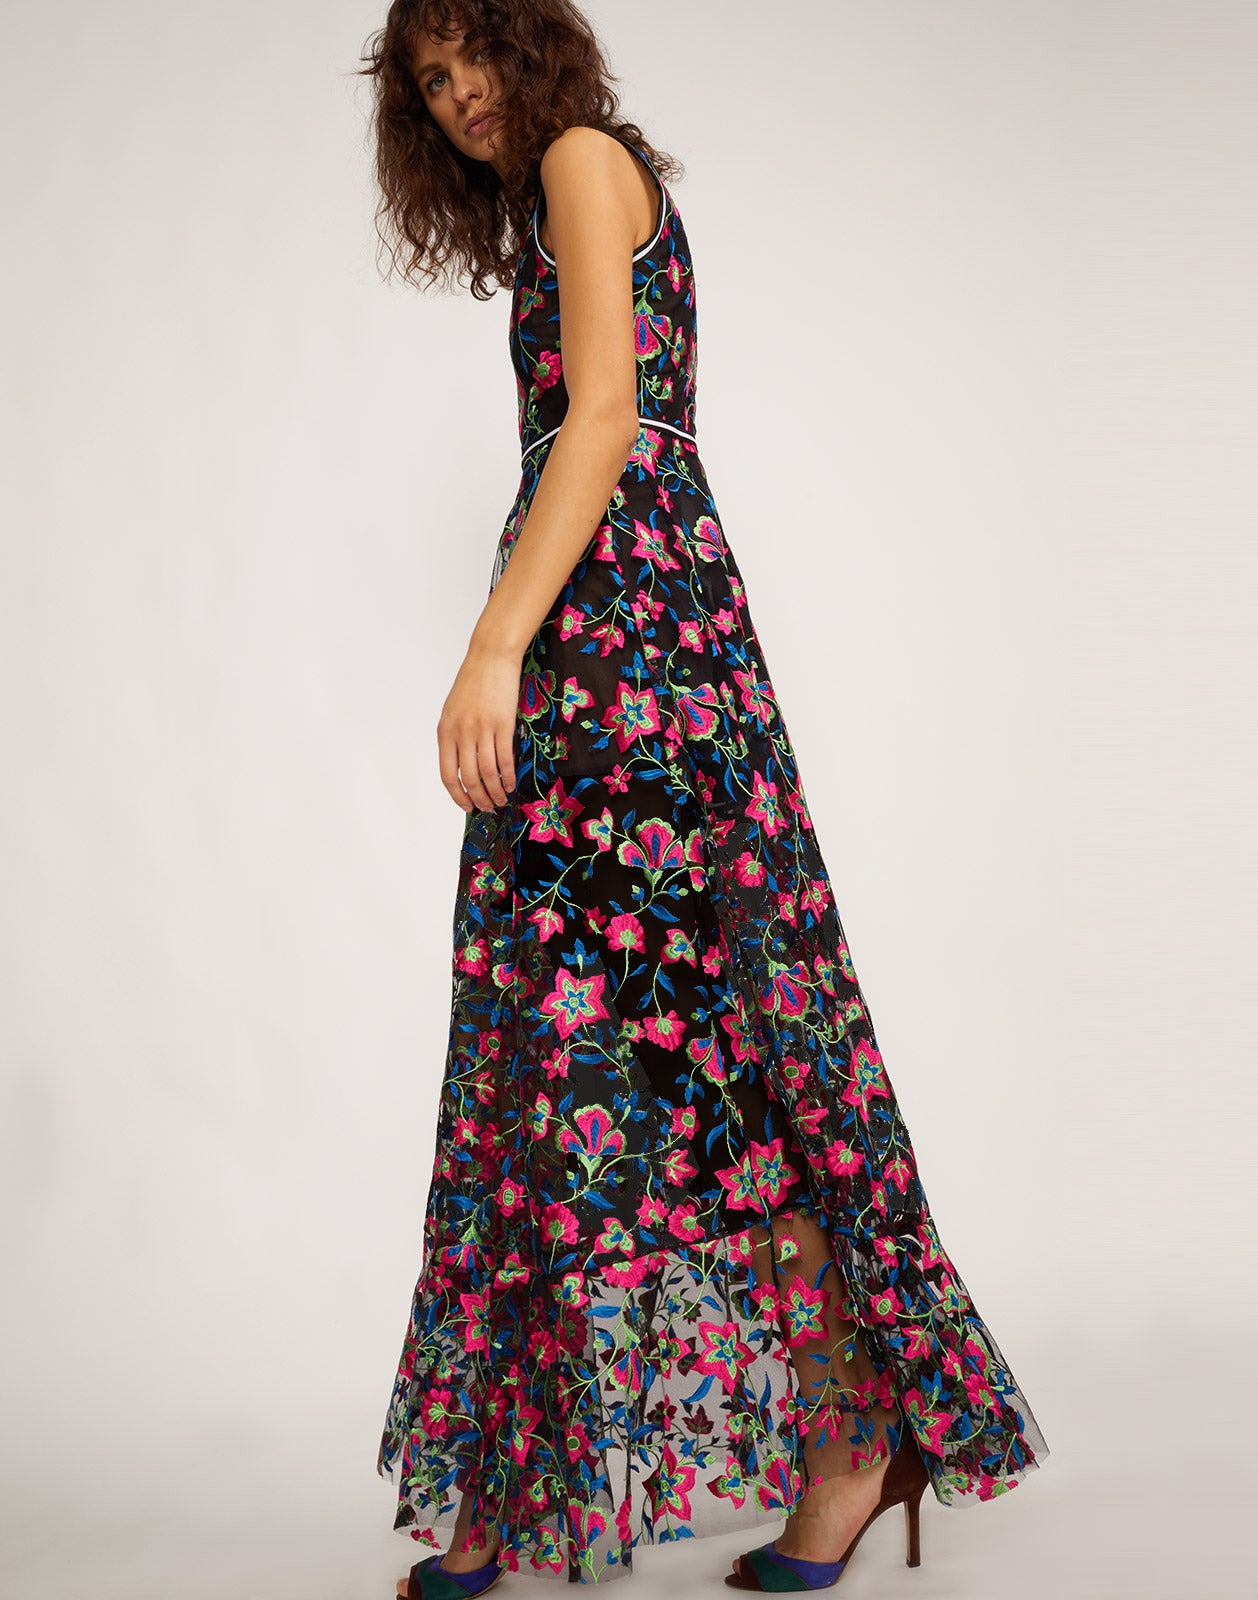 Side view of the Lorelei embroidered mesh maxi dress.